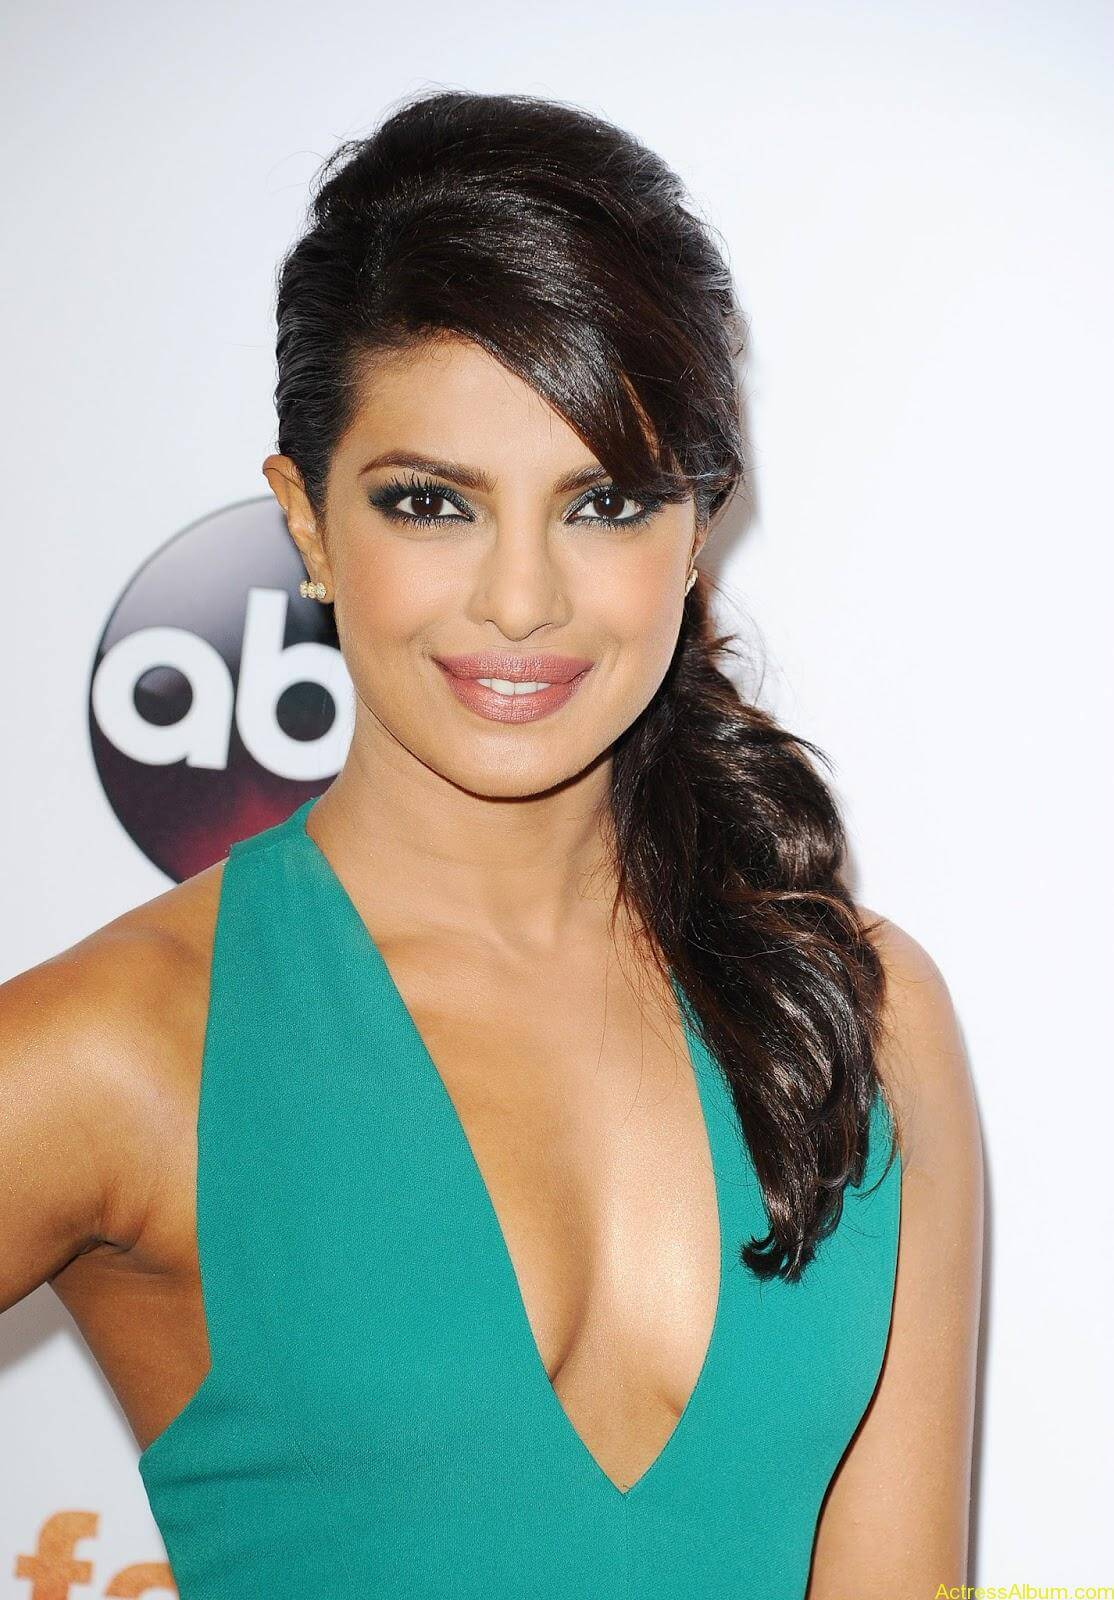 Priyanka-Chopra-Latest-Hot-Cleavage-Photos-Stills-3